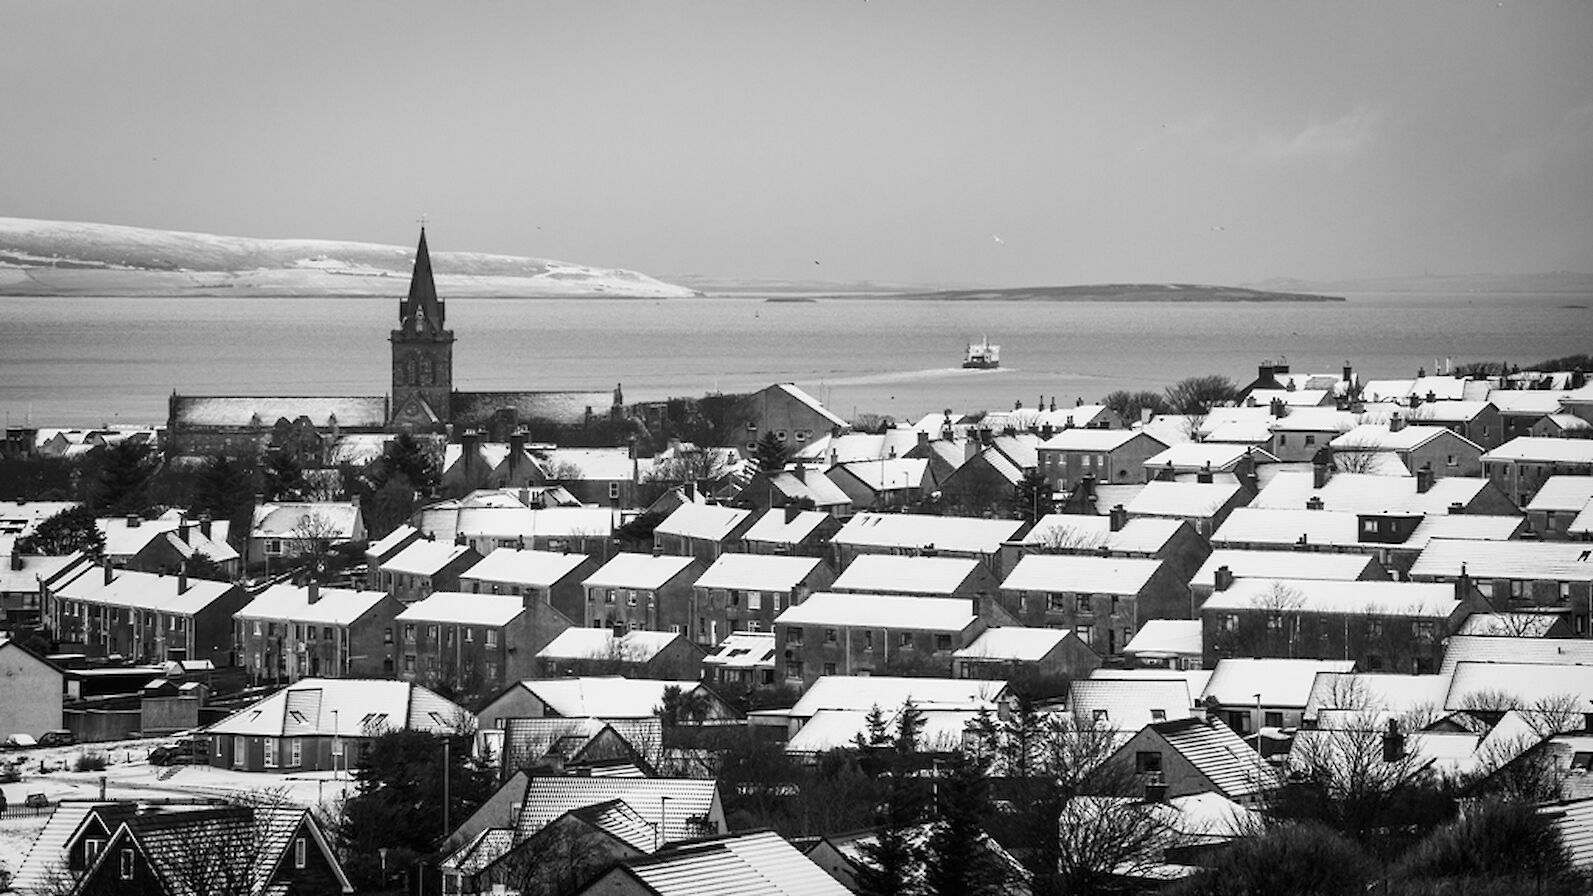 Snowy Kirkwall - image by James Grieve